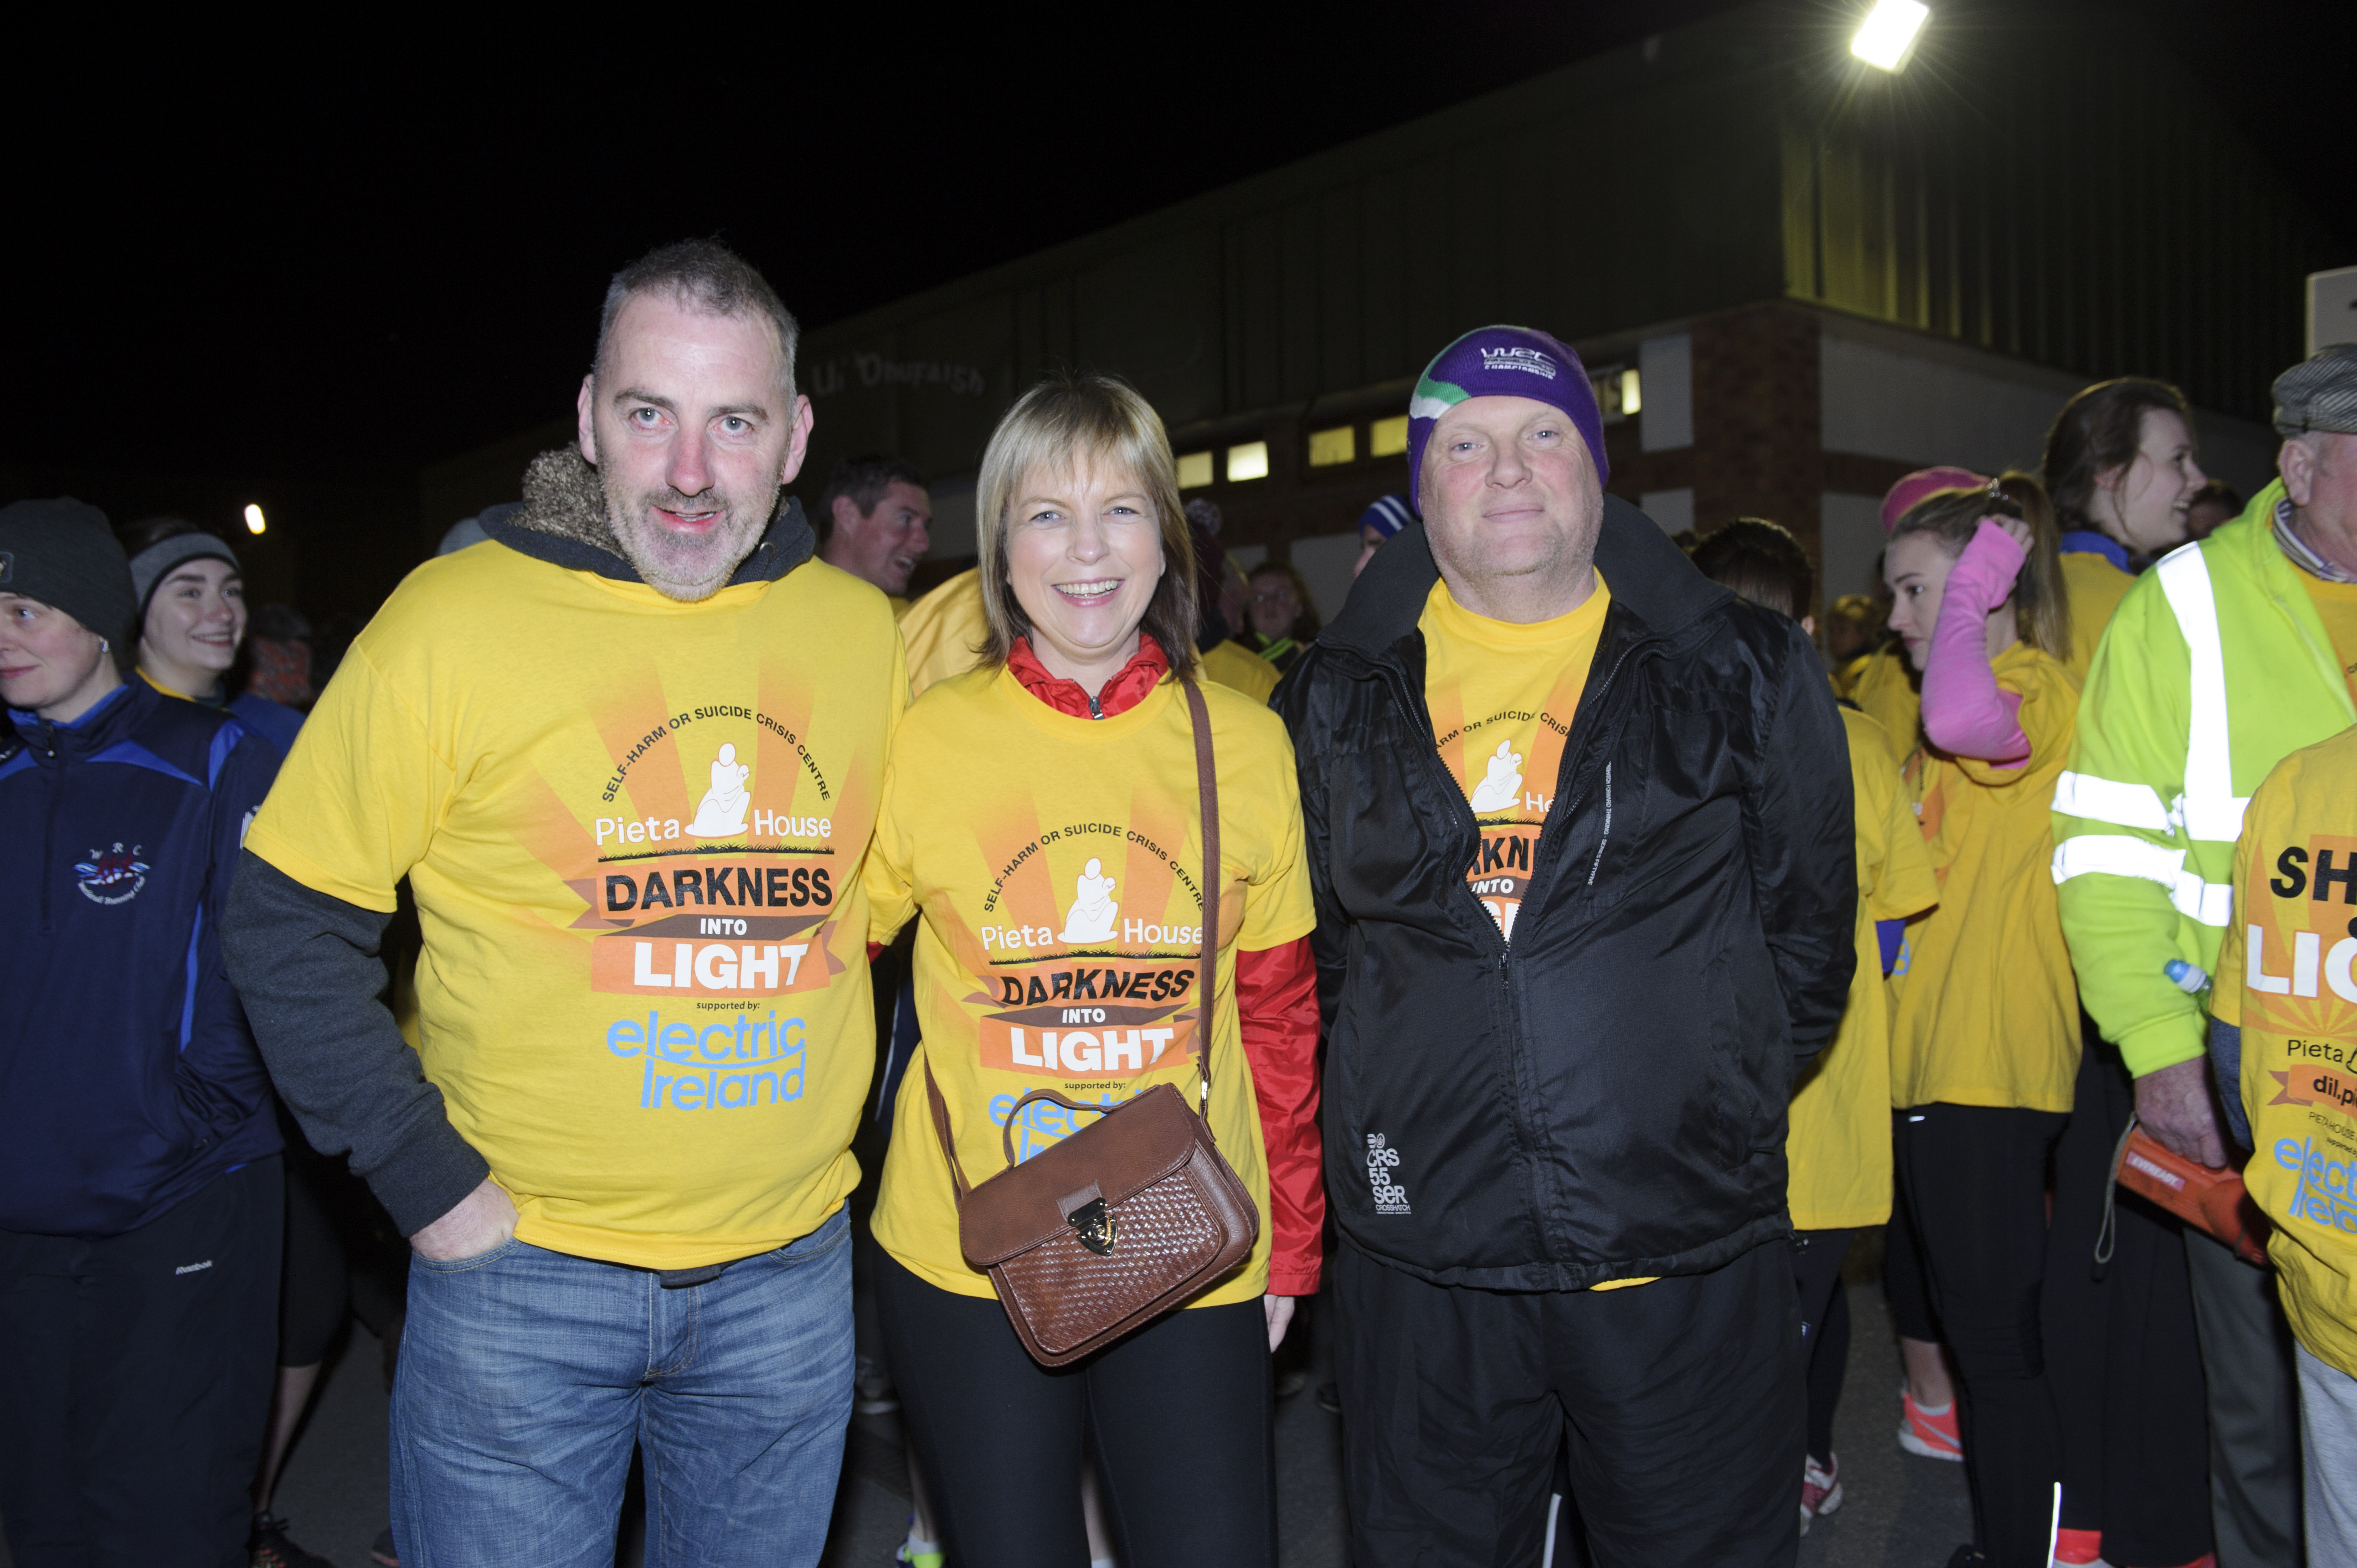 At the Darkness Into Light 5k for Pieta House were (L-R) Brian McKenna, Sharon Murphy and Sean Craig. ©Rory Geary/The Northern Standard